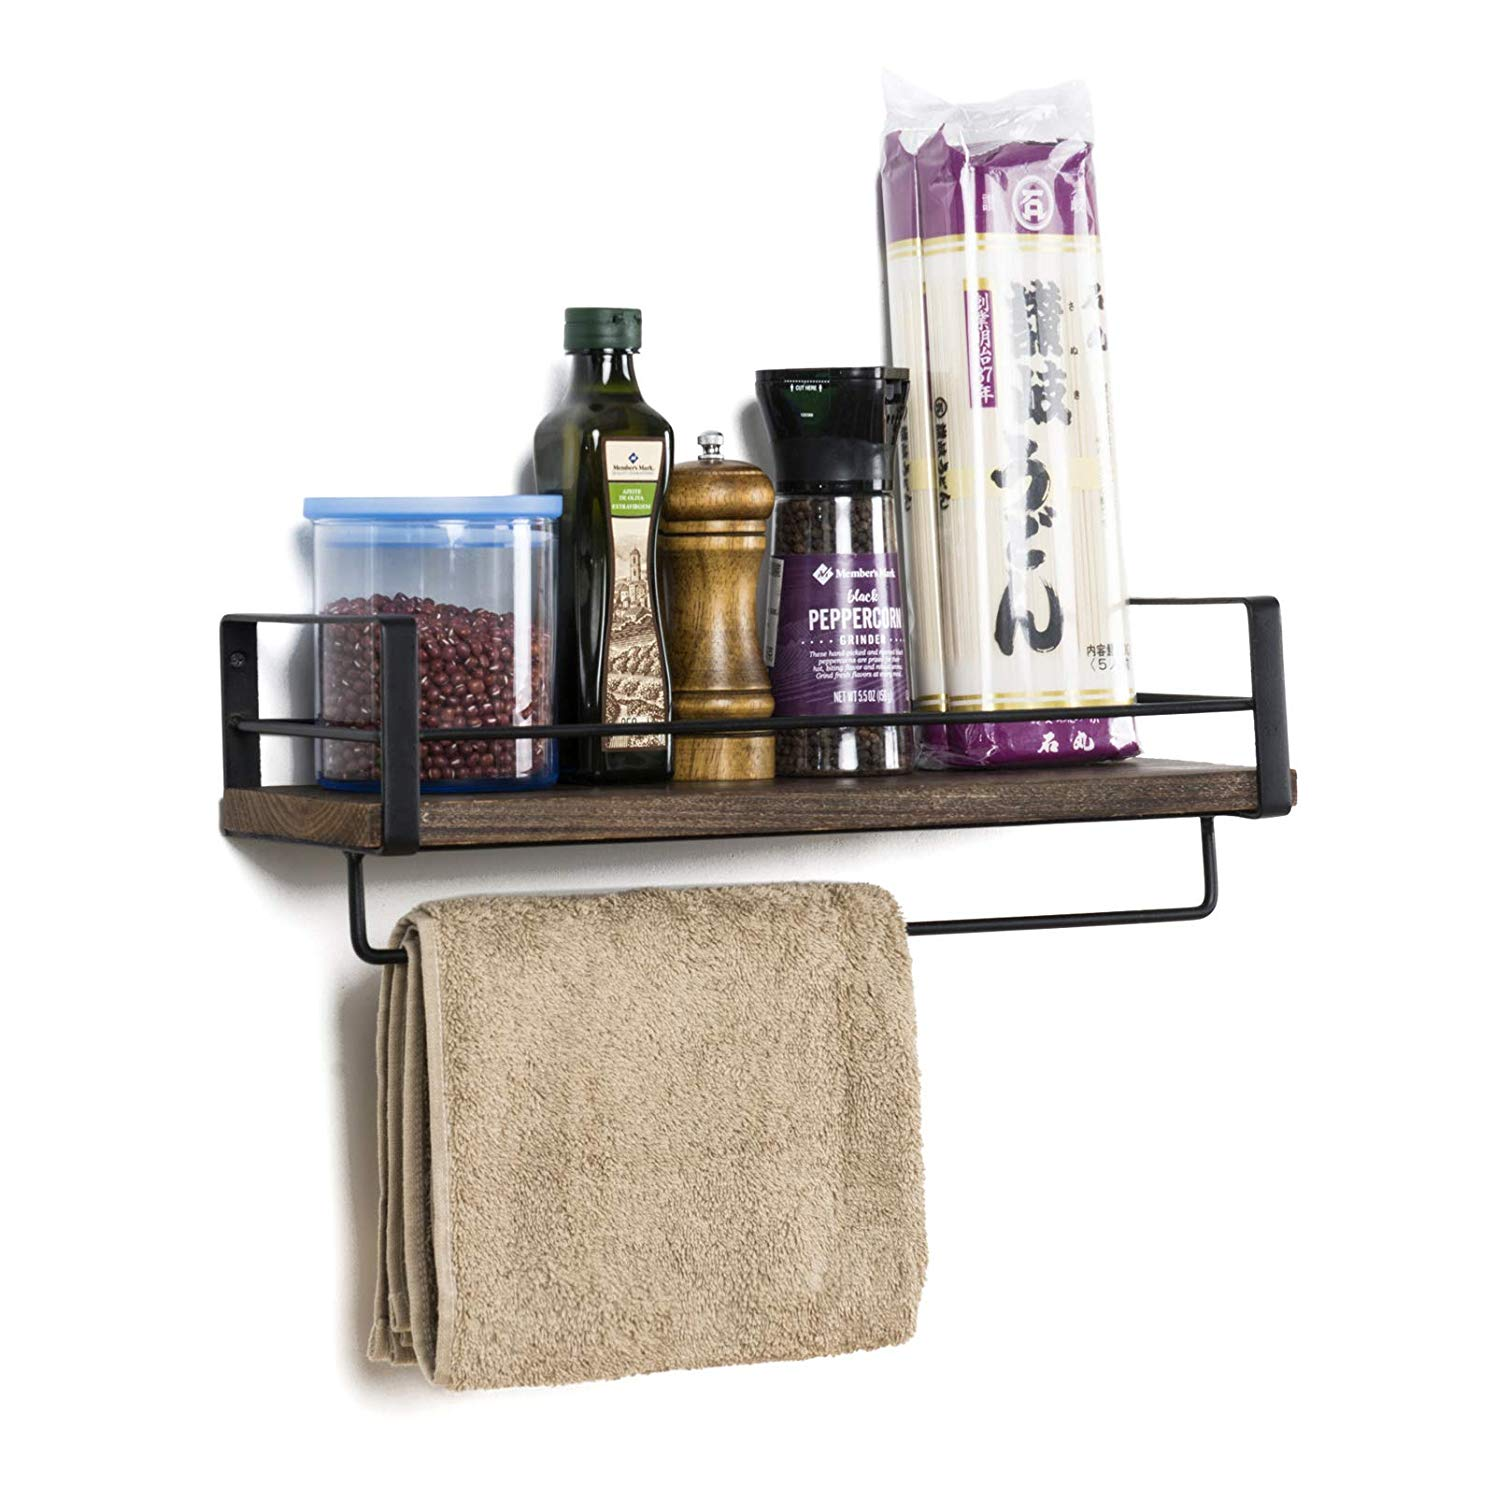 soduku rustic kitchen wood wall shelf rack with towel bar and metal floating shelves mounted toilet storage for command strip hooks bathroom floor underlayment vinyl curtain